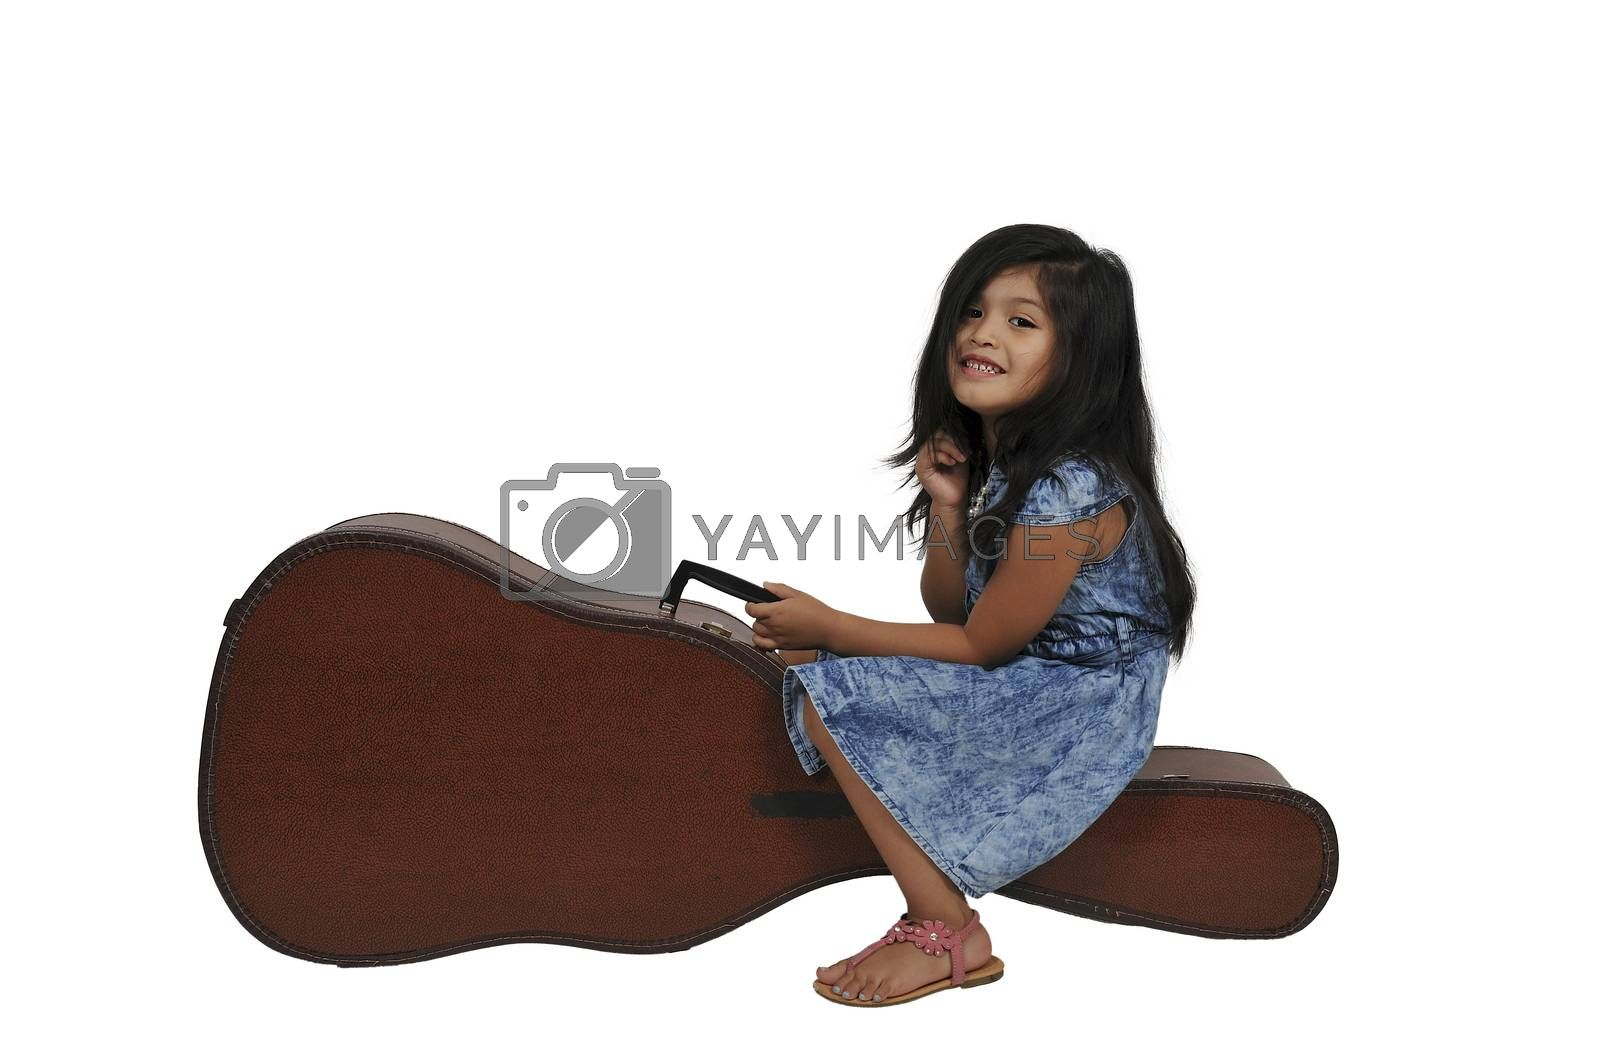 Little girl sitting on a acoustic guitar case